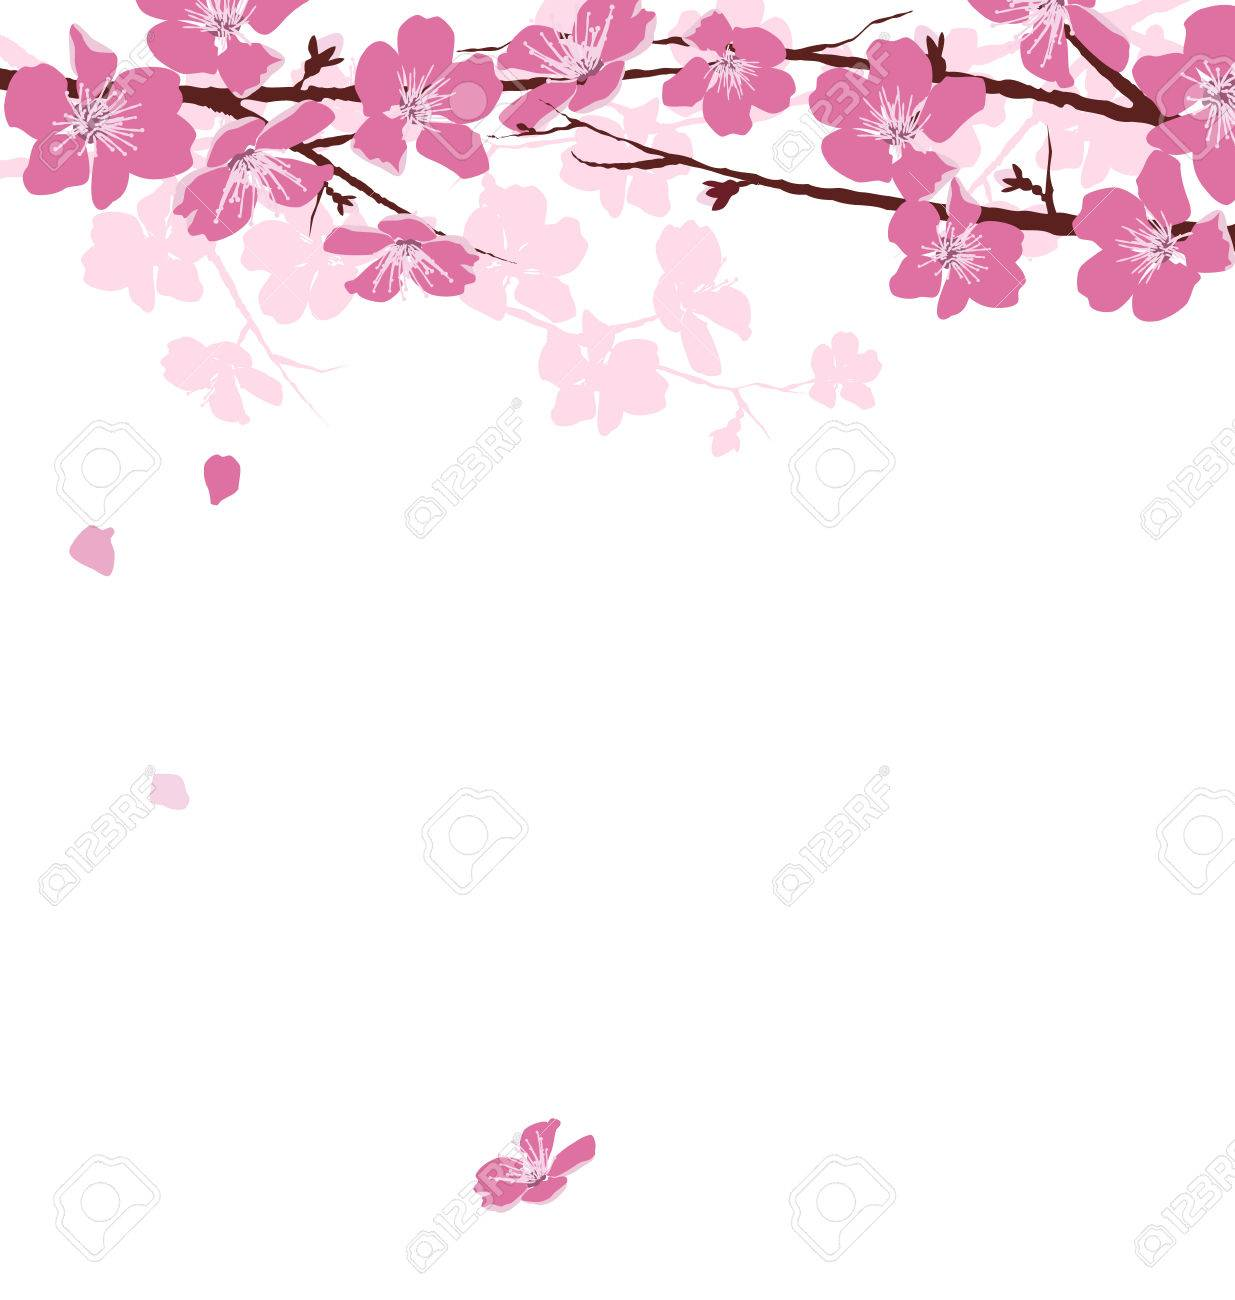 Branches with pink flowers isolated on white background - 38551313